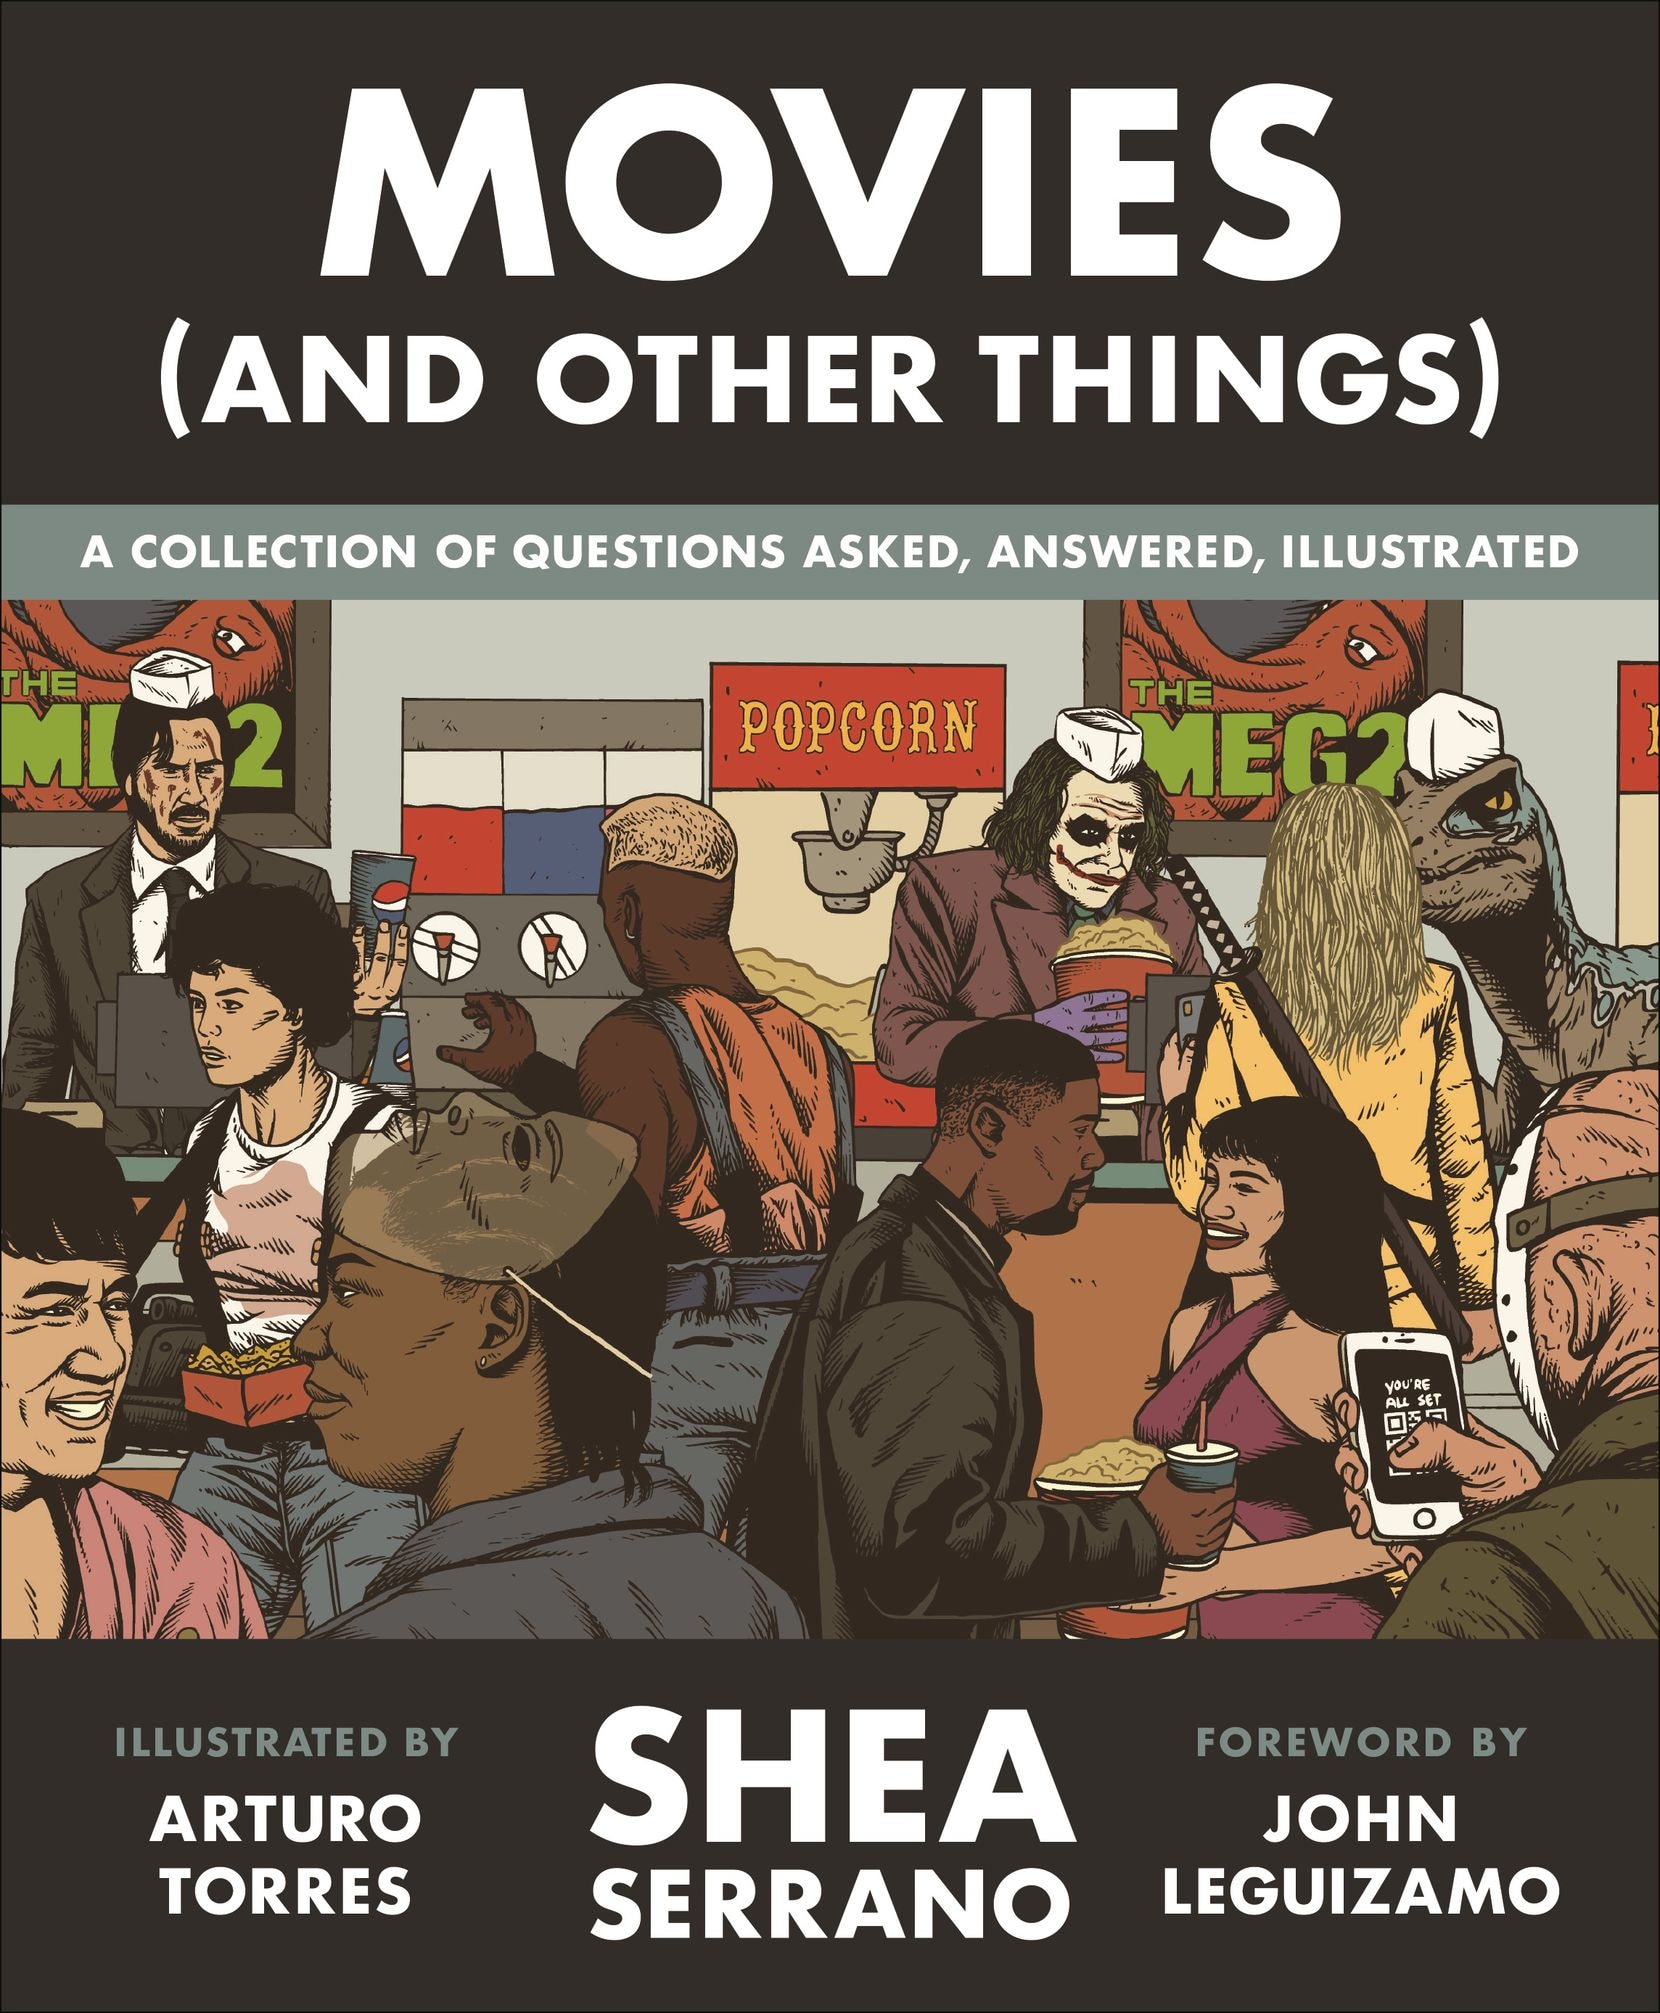 Shea Serrano's new book 'Movies (and Other Things)' features illustrations by Dallas artist Arturo Torres.